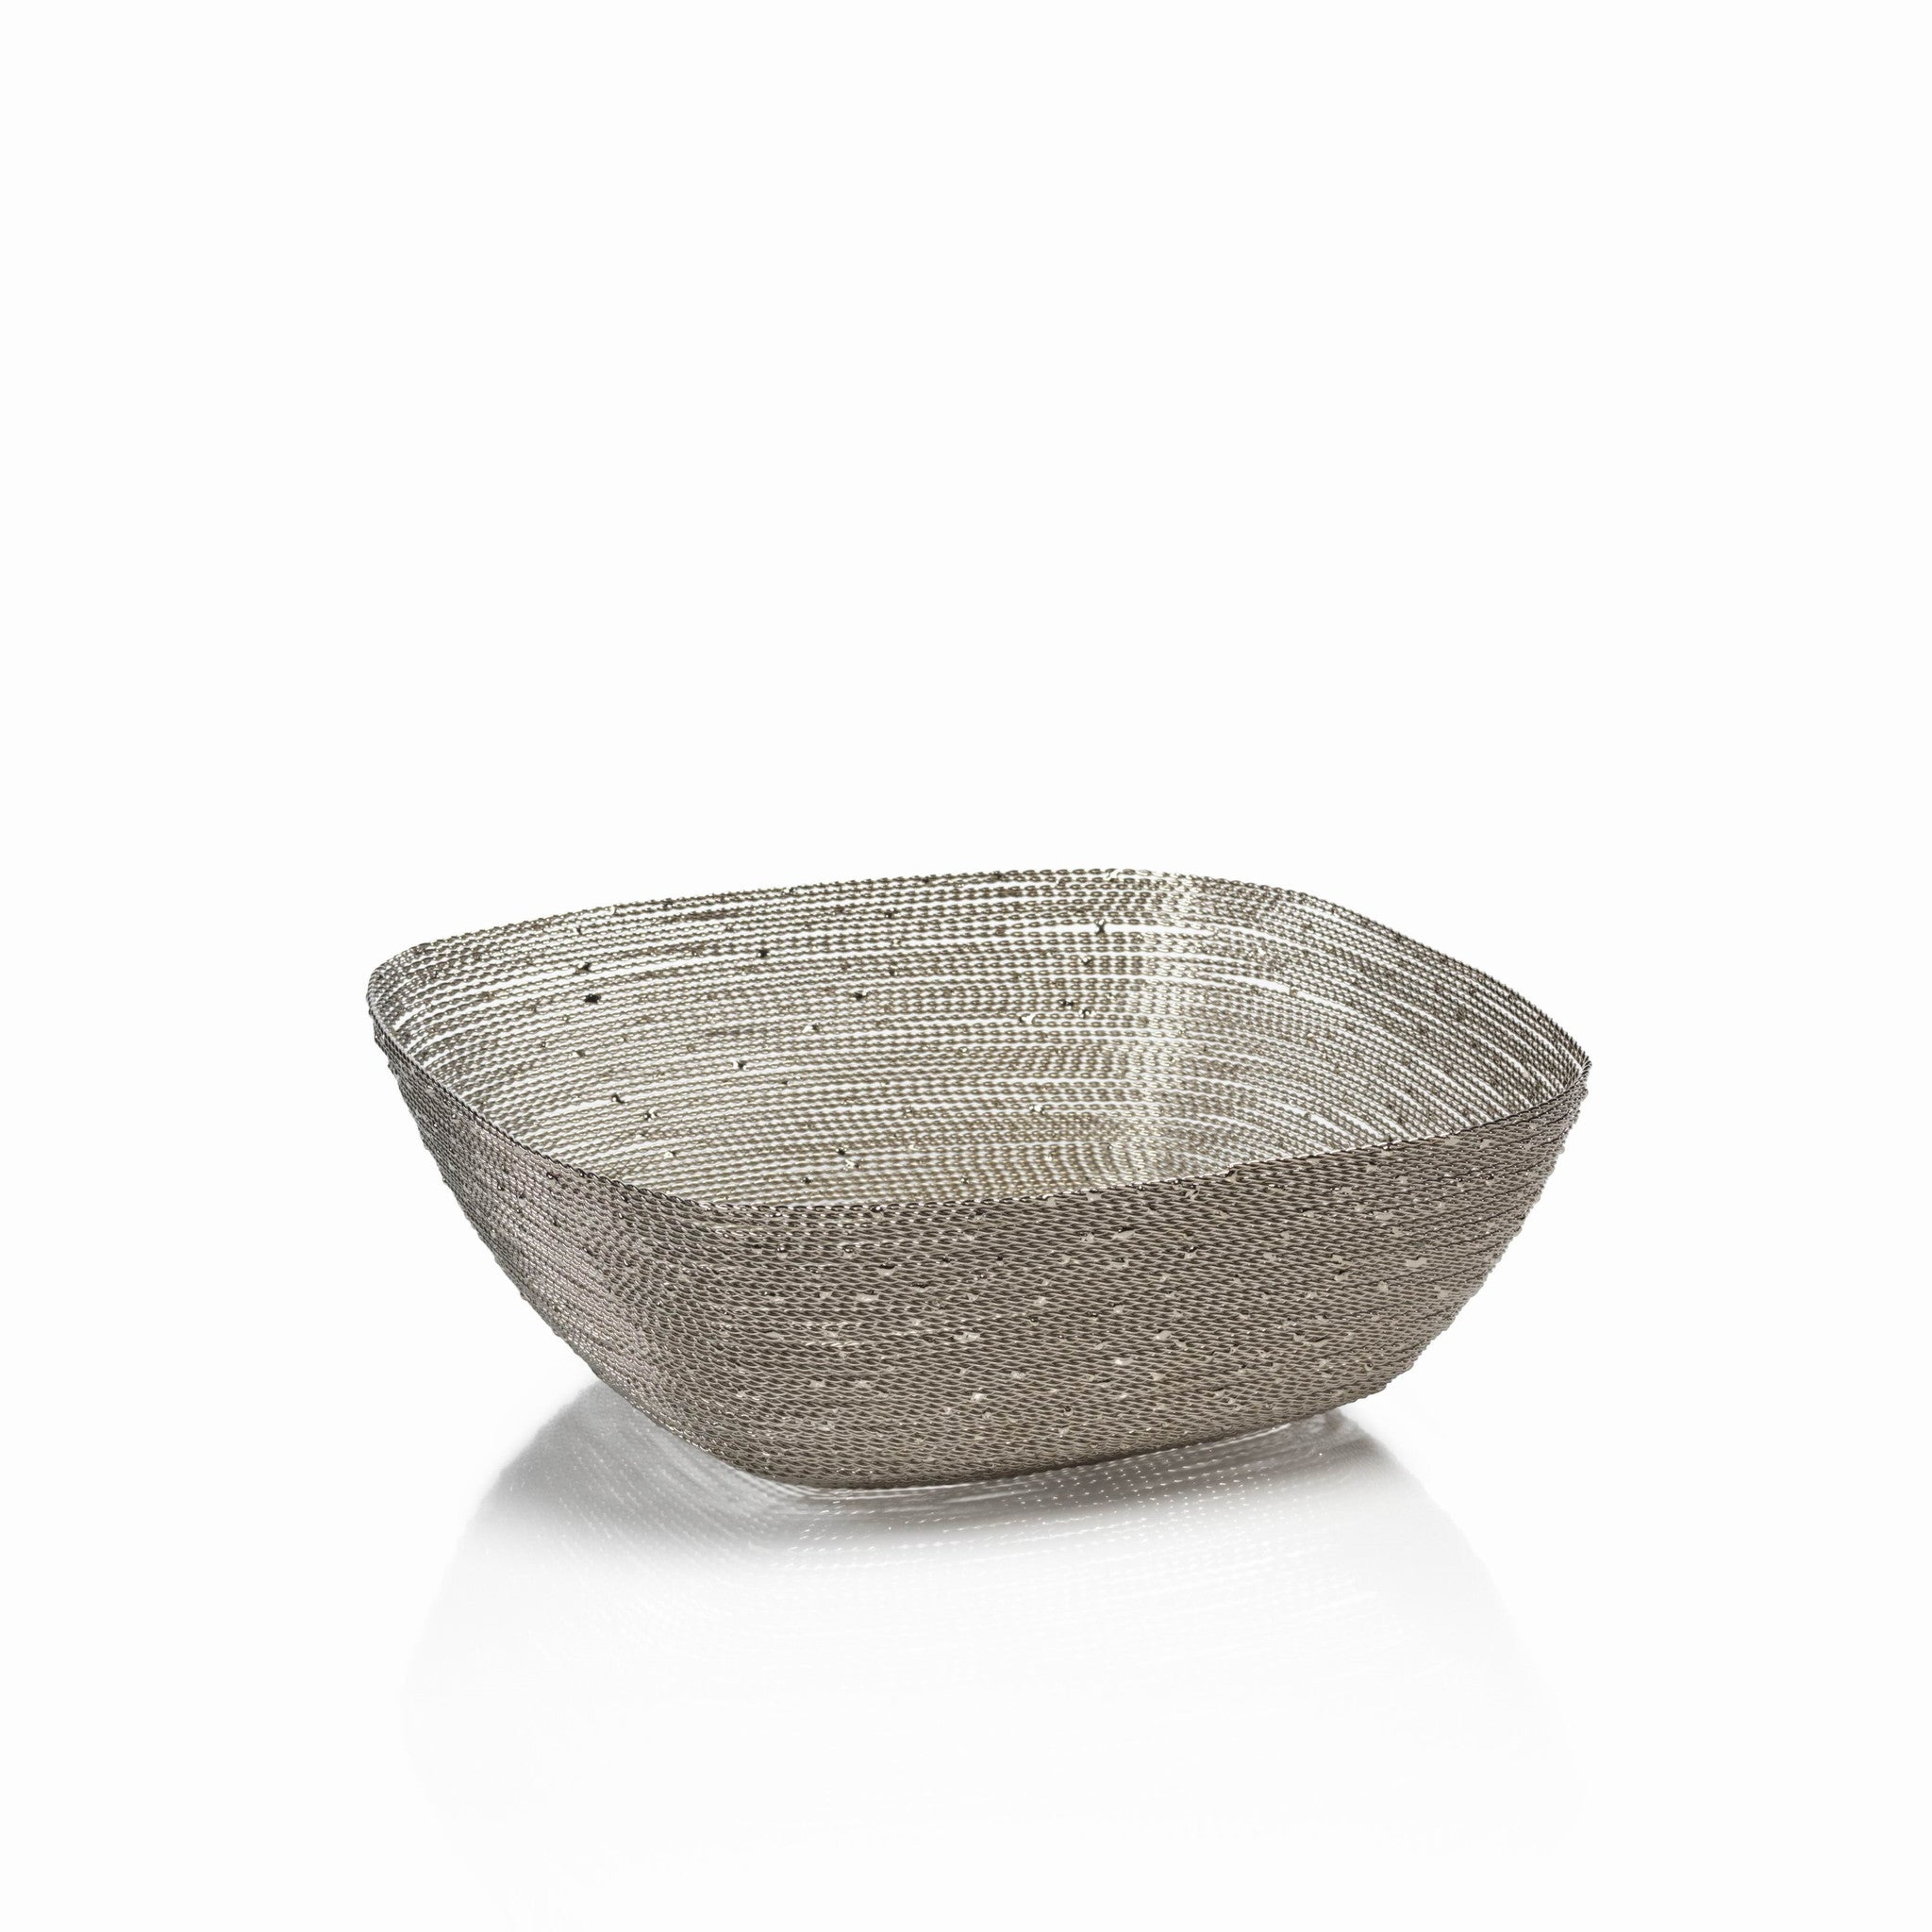 Zulu Woven Wire Basket - Square / Large - CARLYLE AVENUE - 5